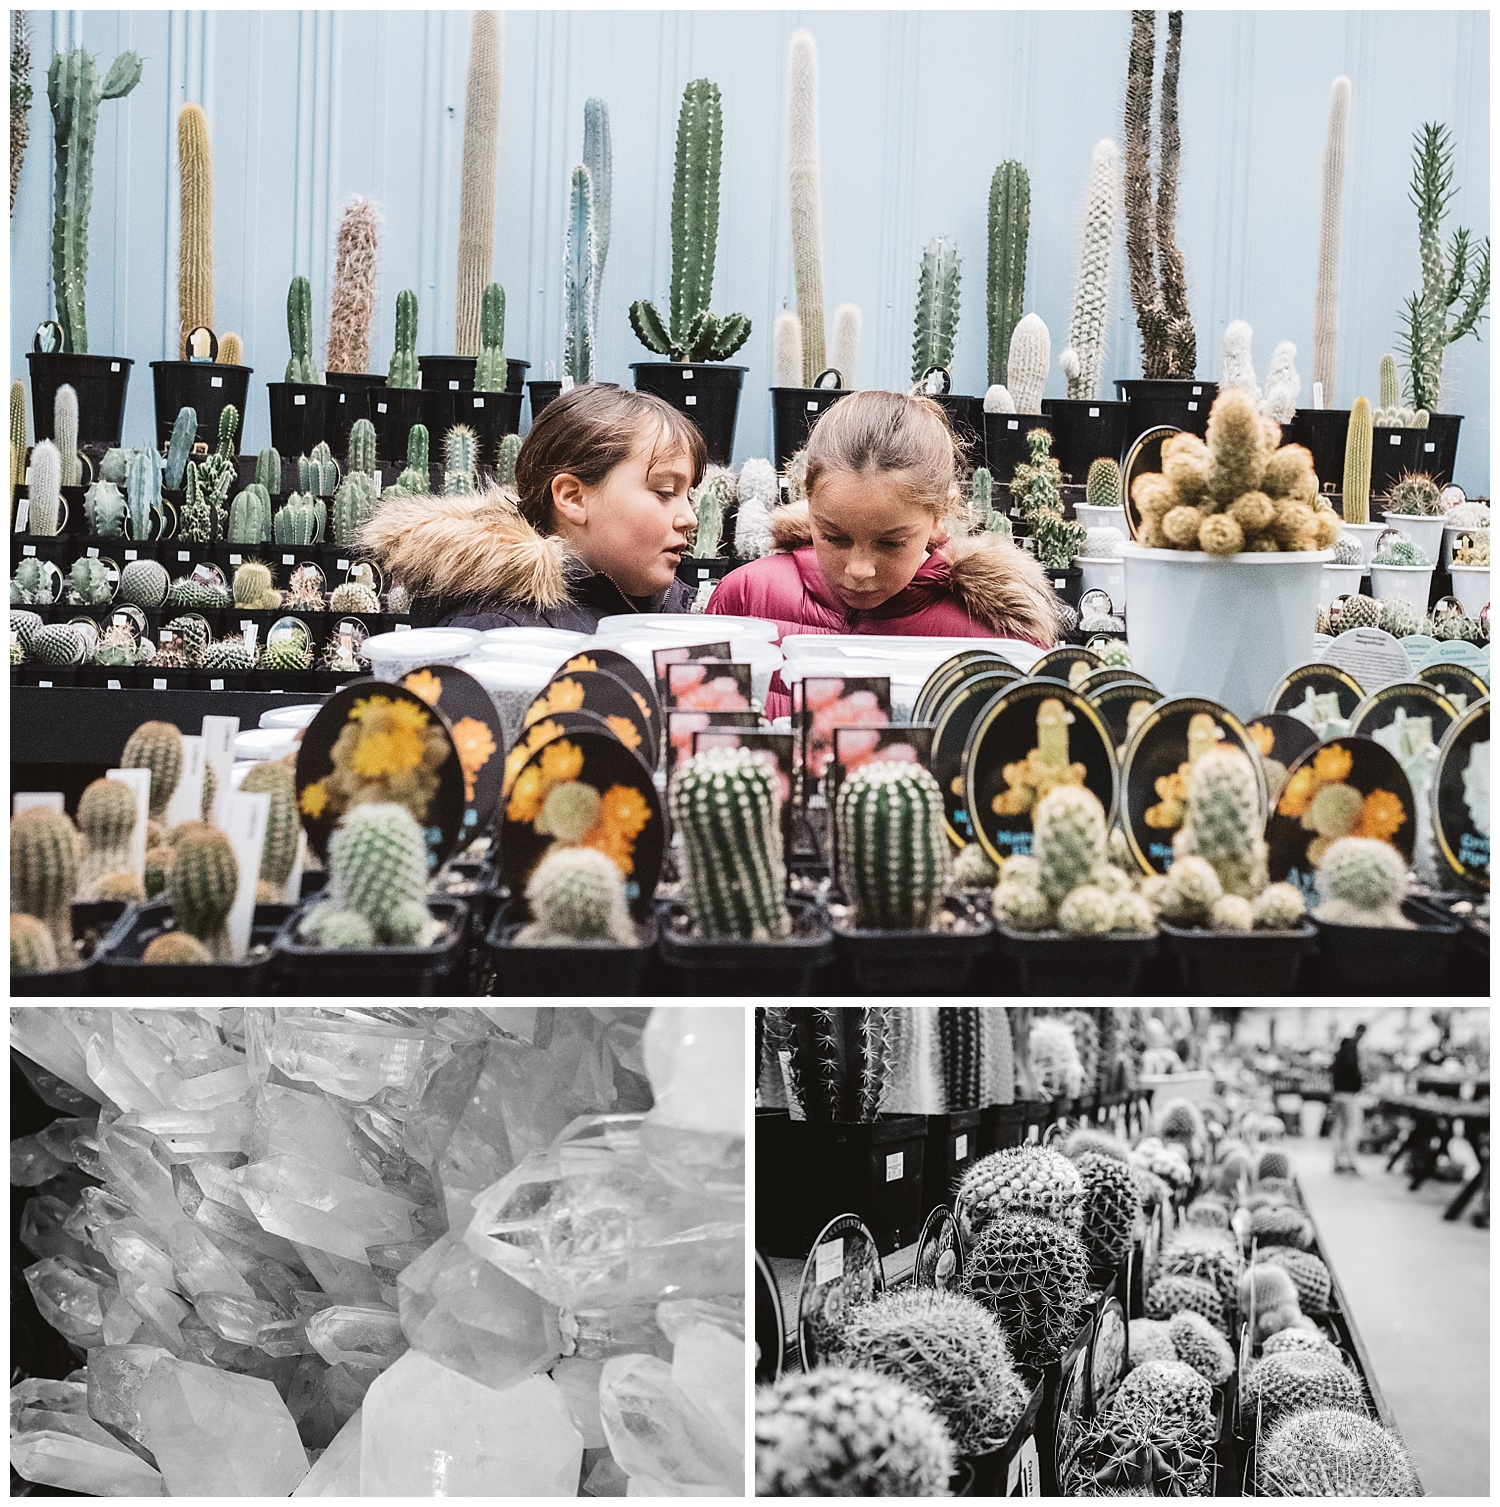 sandringham family in a nursery looking at cactus and stones